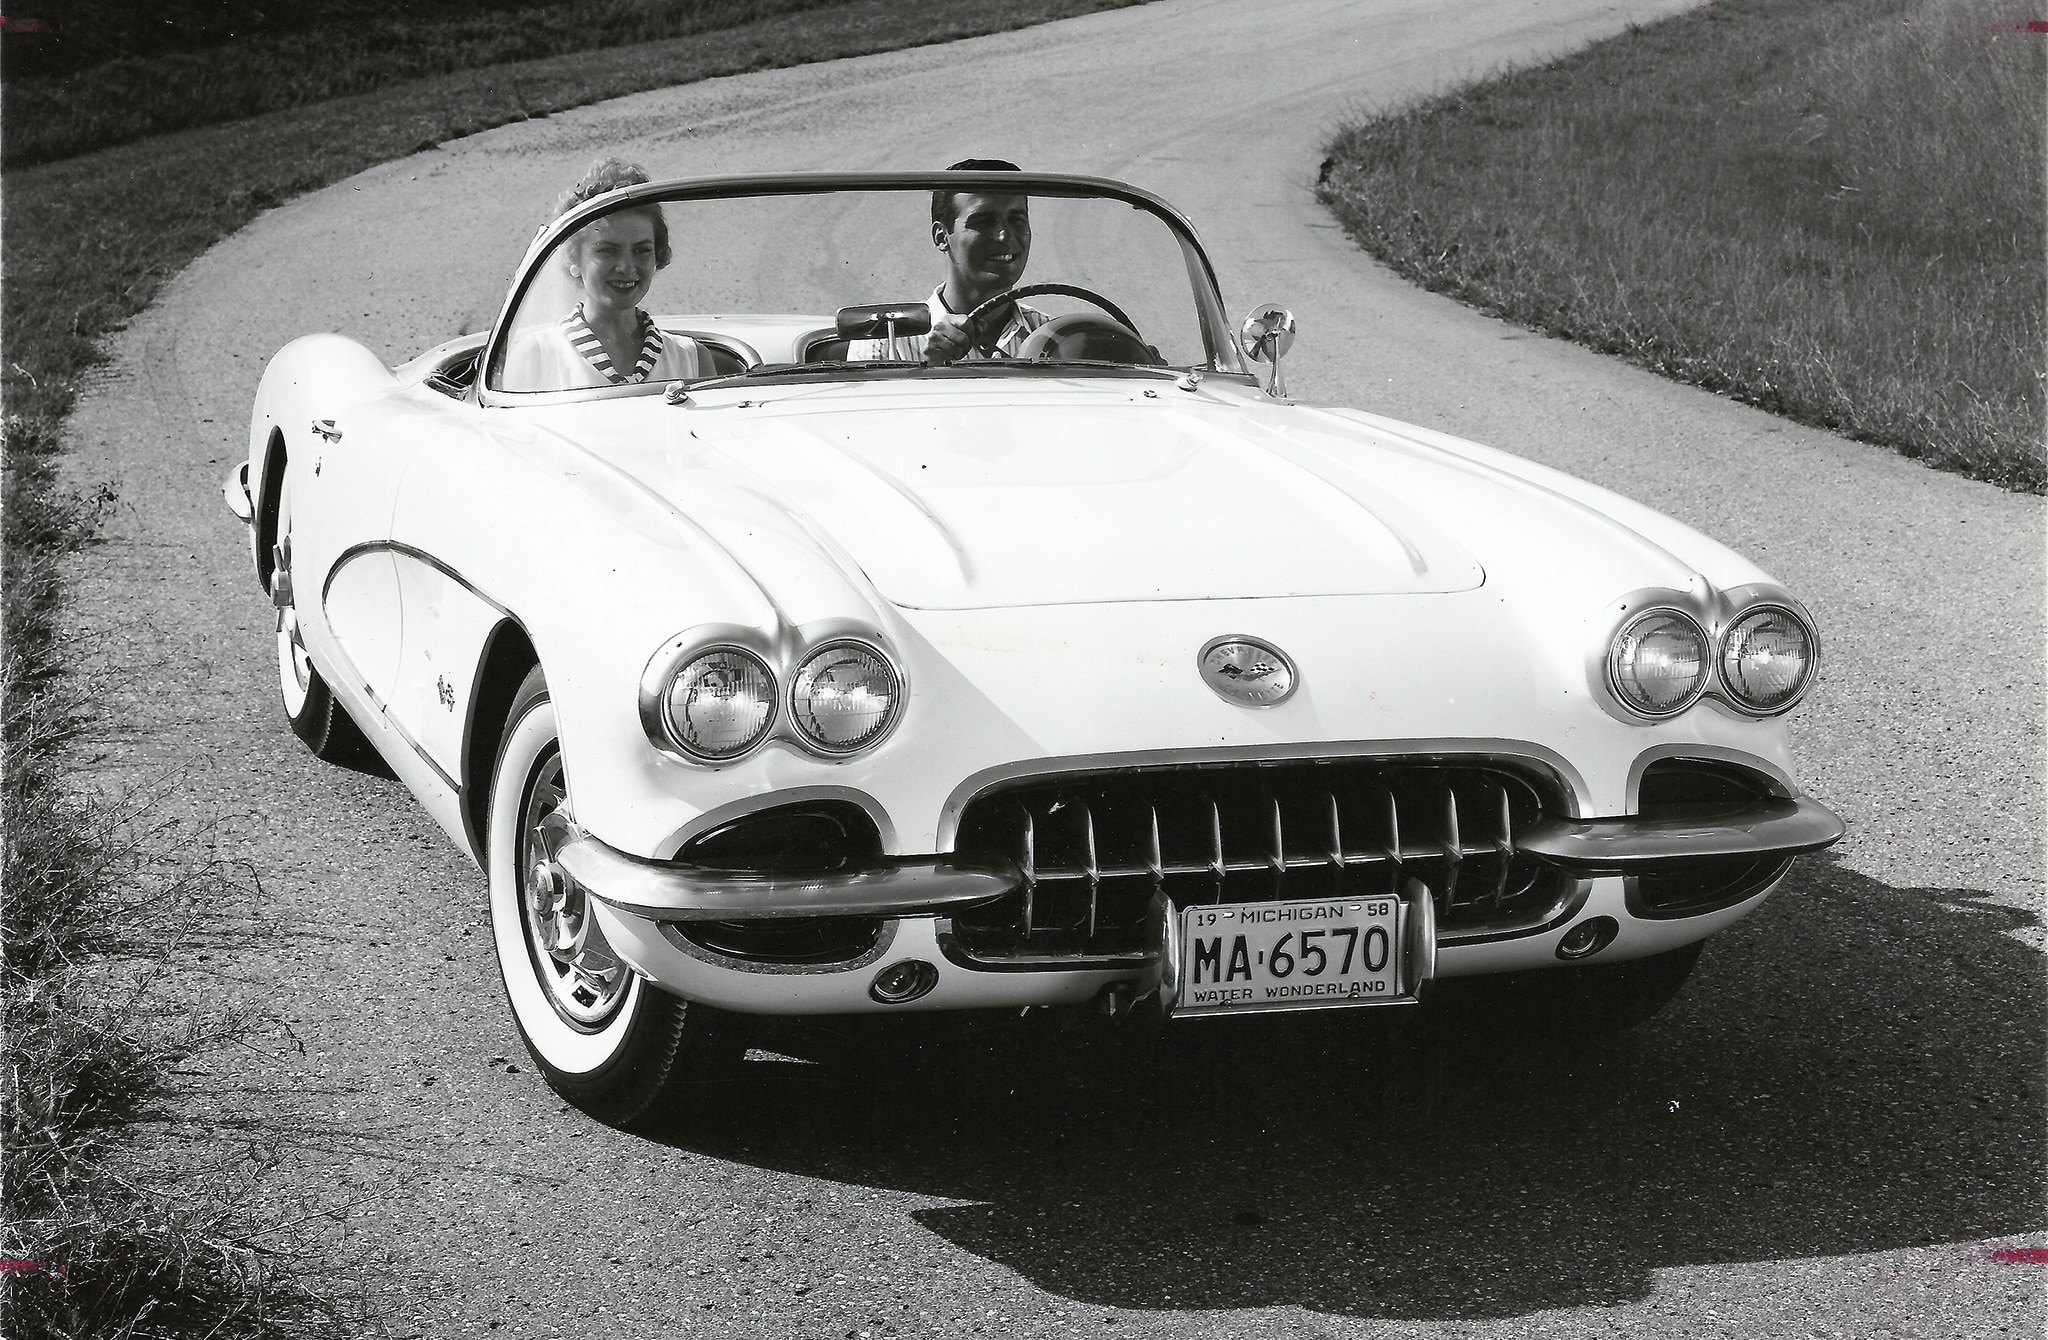 a history of the chevrolet corvette an american automobile History of the model chevrolet's corvette has become  chevrolet's corvette has become an icon of the american  more listings related to chevrolet corvette.